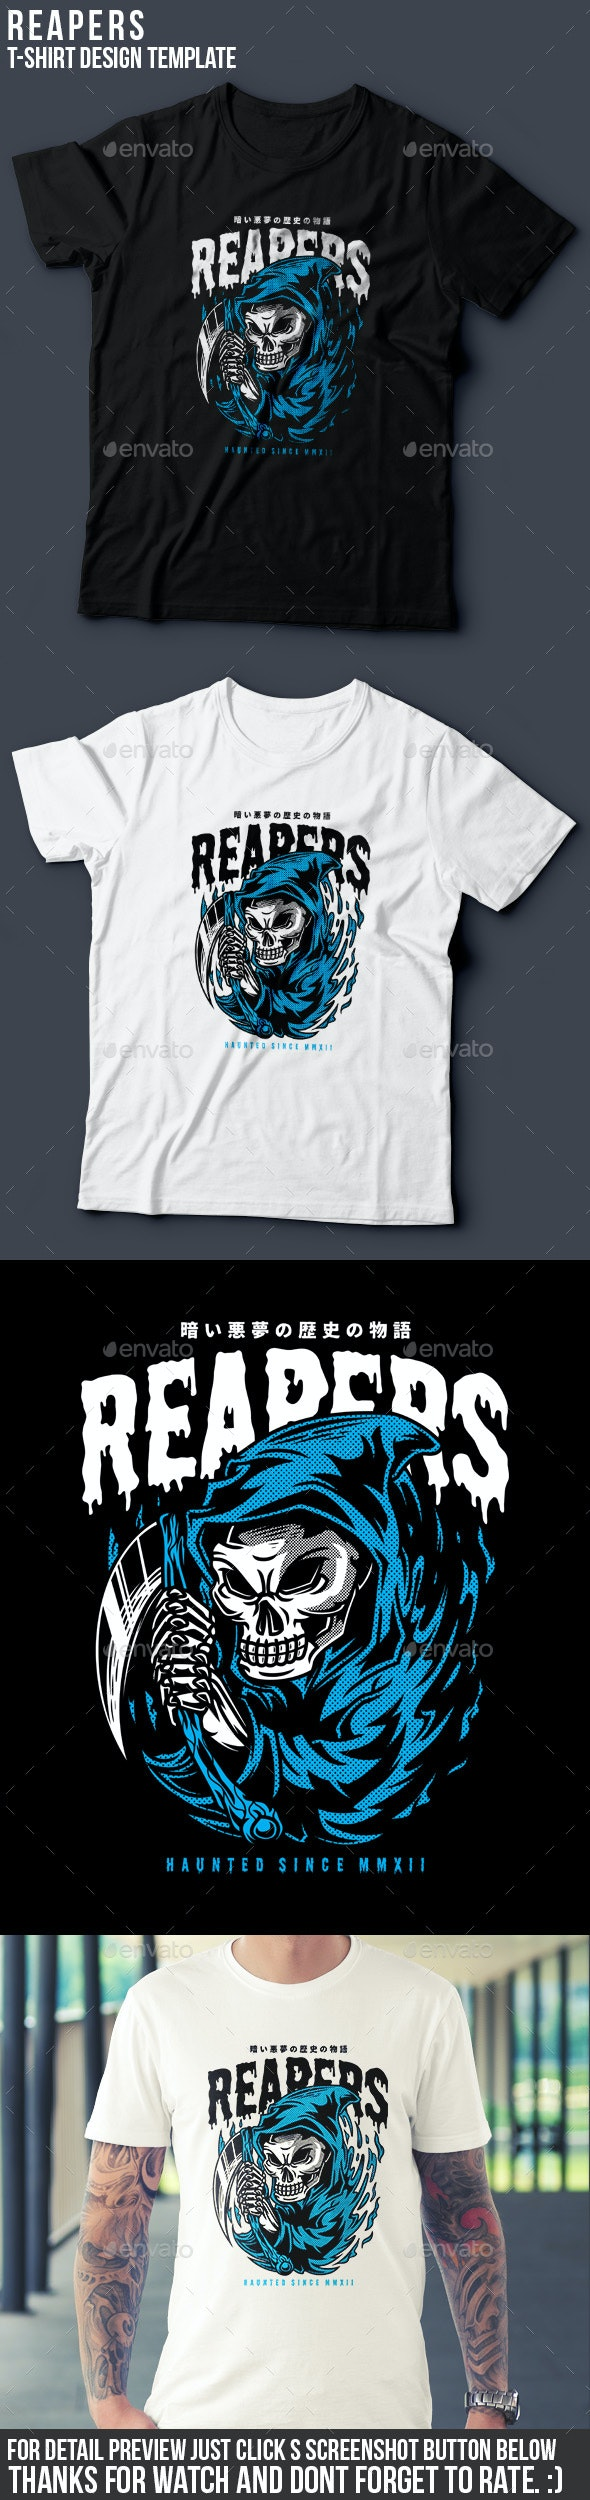 Reapers T-Shirt Design